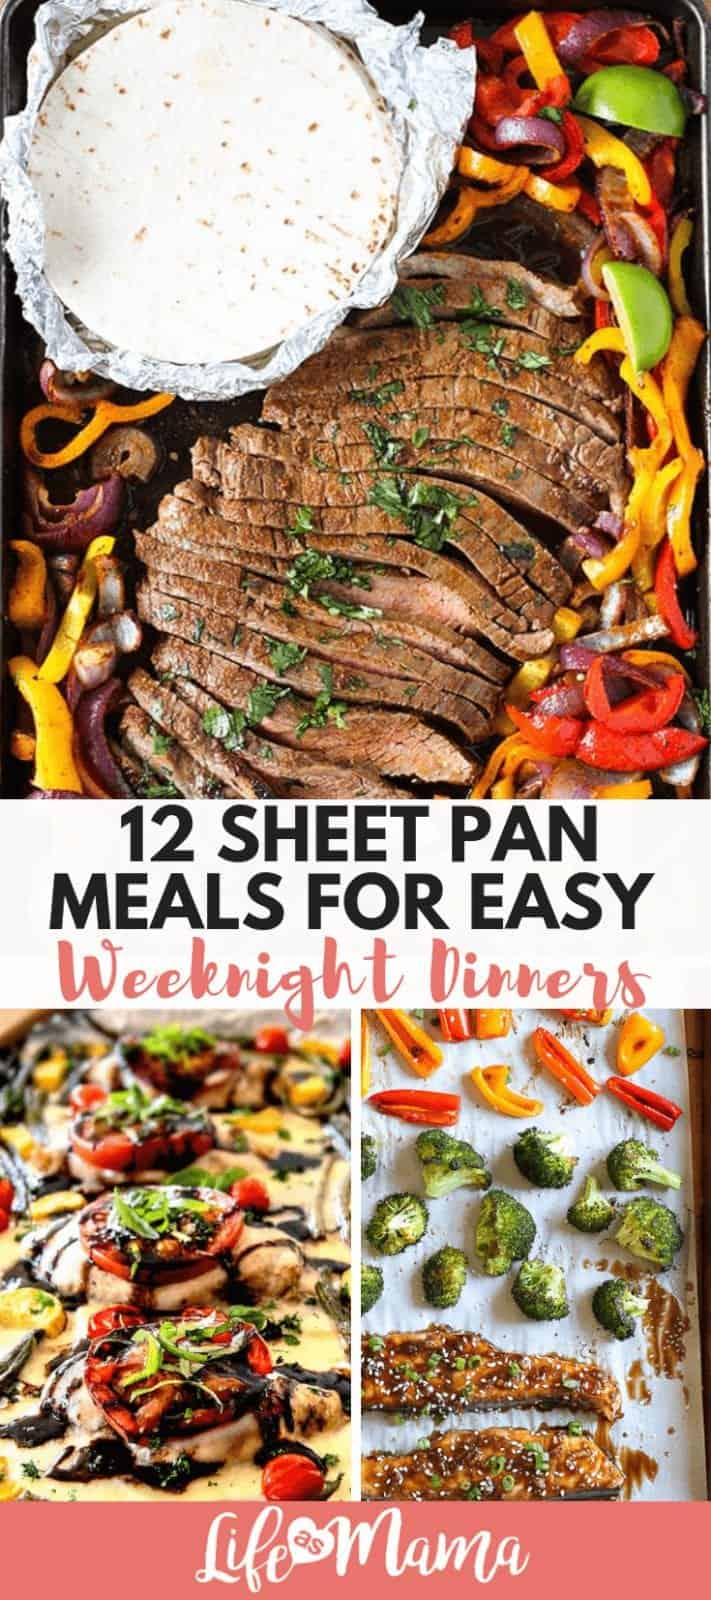 12 Sheet Pan Meals For Easy Weeknight Dinners